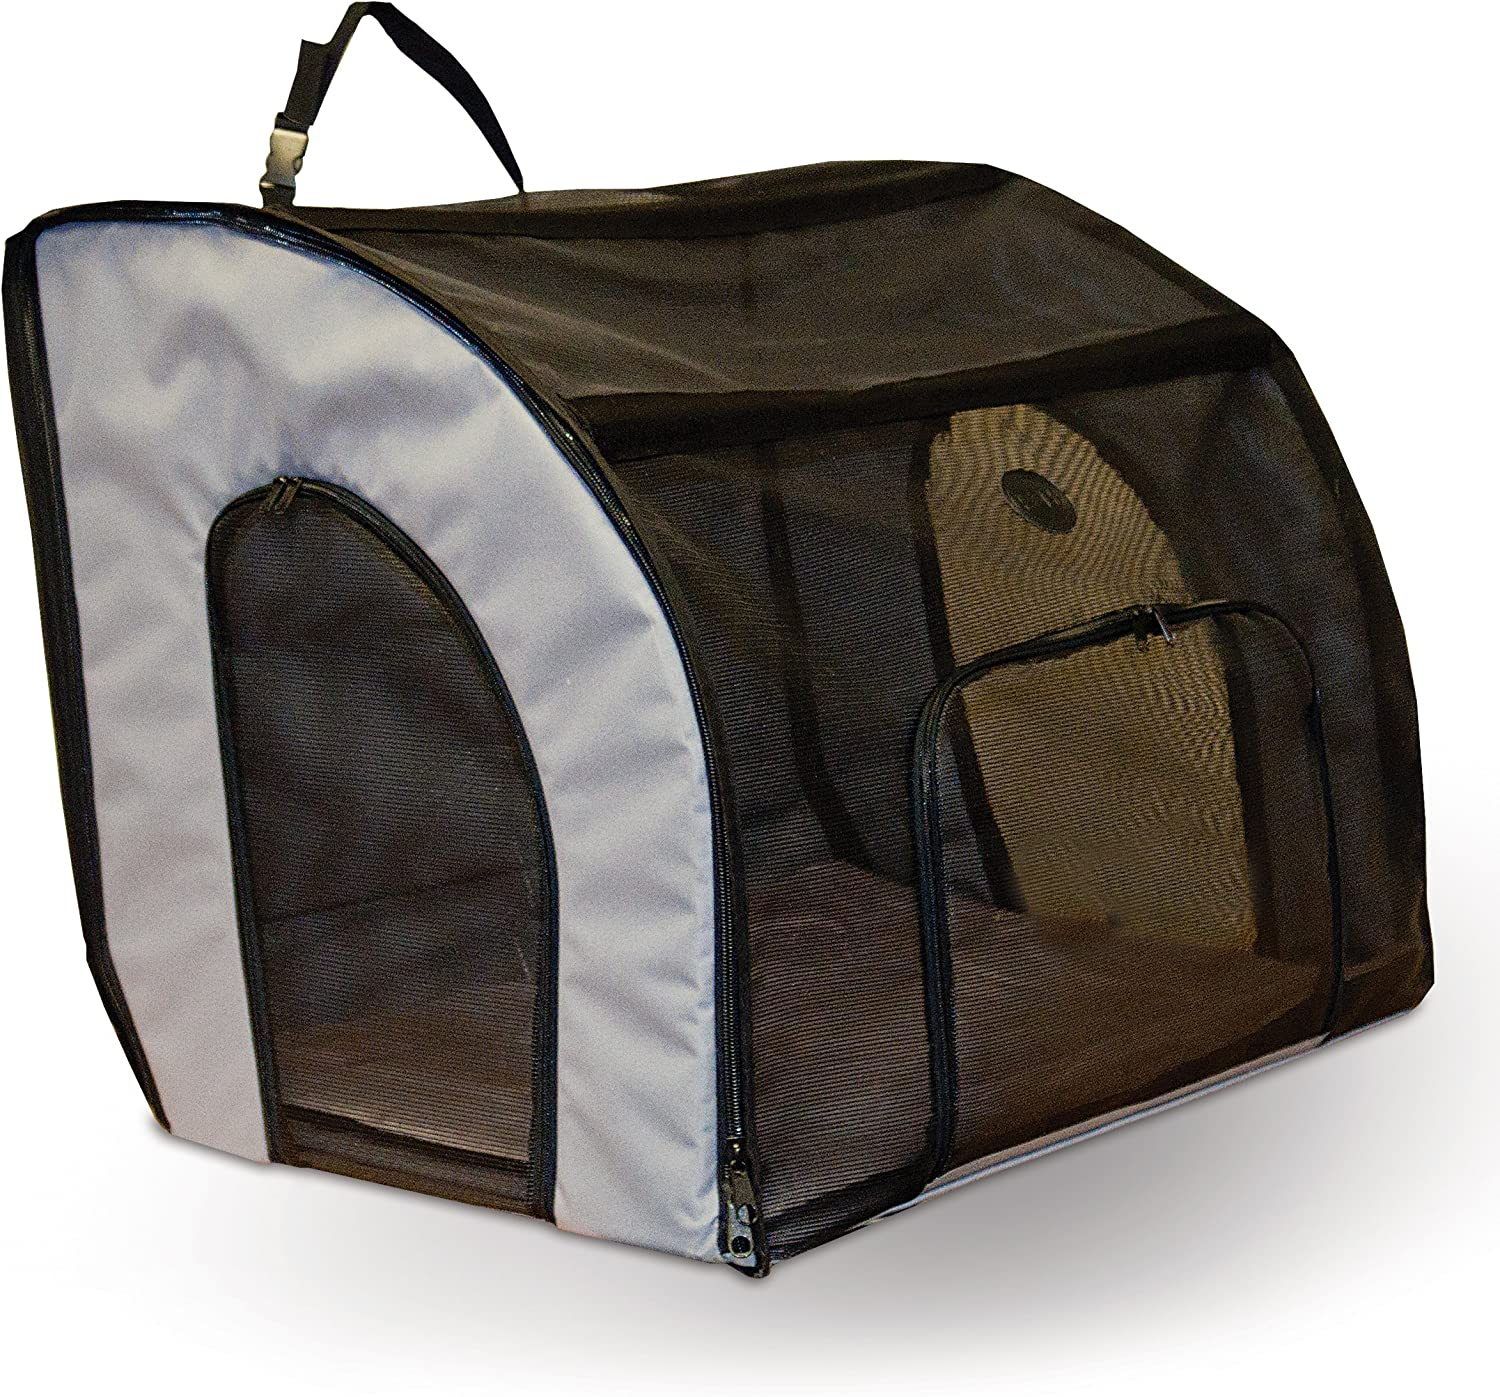 K & H Pet Products Travel Carrier